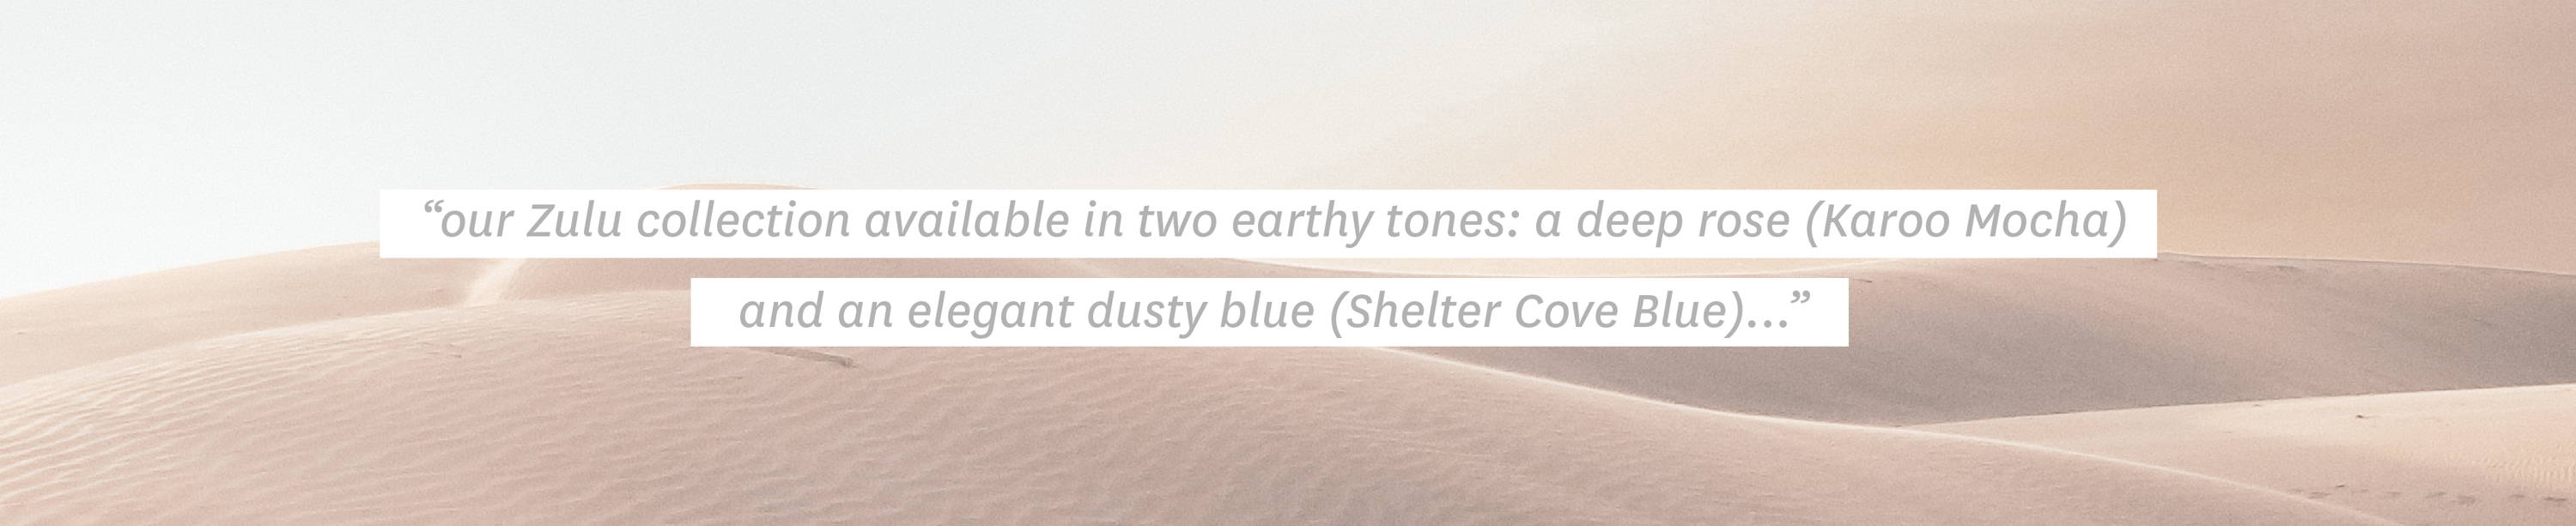 "Quote: ""our Zulu collection is available in two earthy tones: a deep rose (Karoo Mocha) that evokes sloping desert dunes under the afternoon sun, and an elegant dusty blue (Shelter Cove Blue)..."""